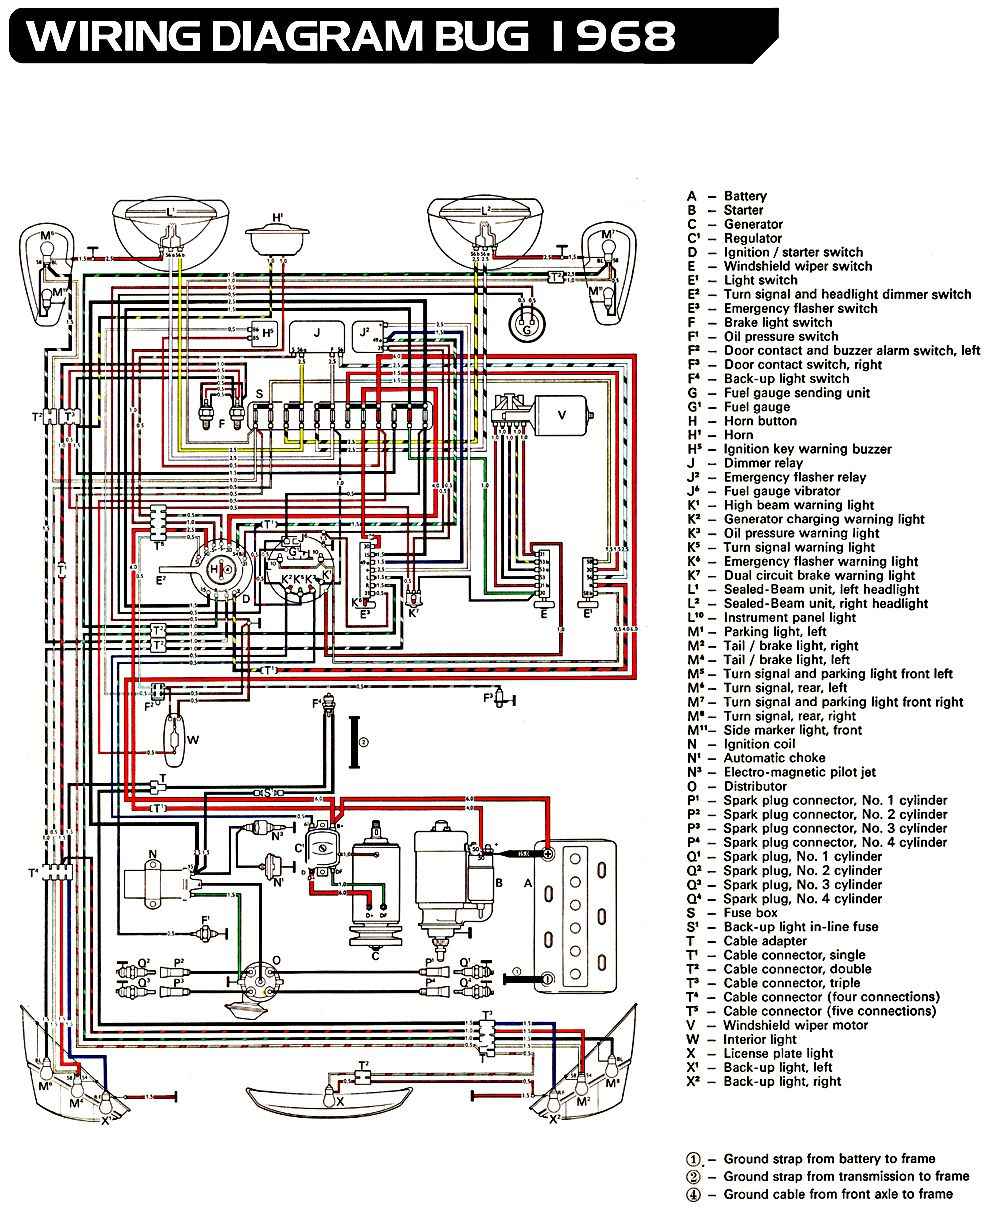 chirco dune buggy wiring diagram 1972 vw wiring diagram | wiring diagram 1972 dune buggy wiring diagram